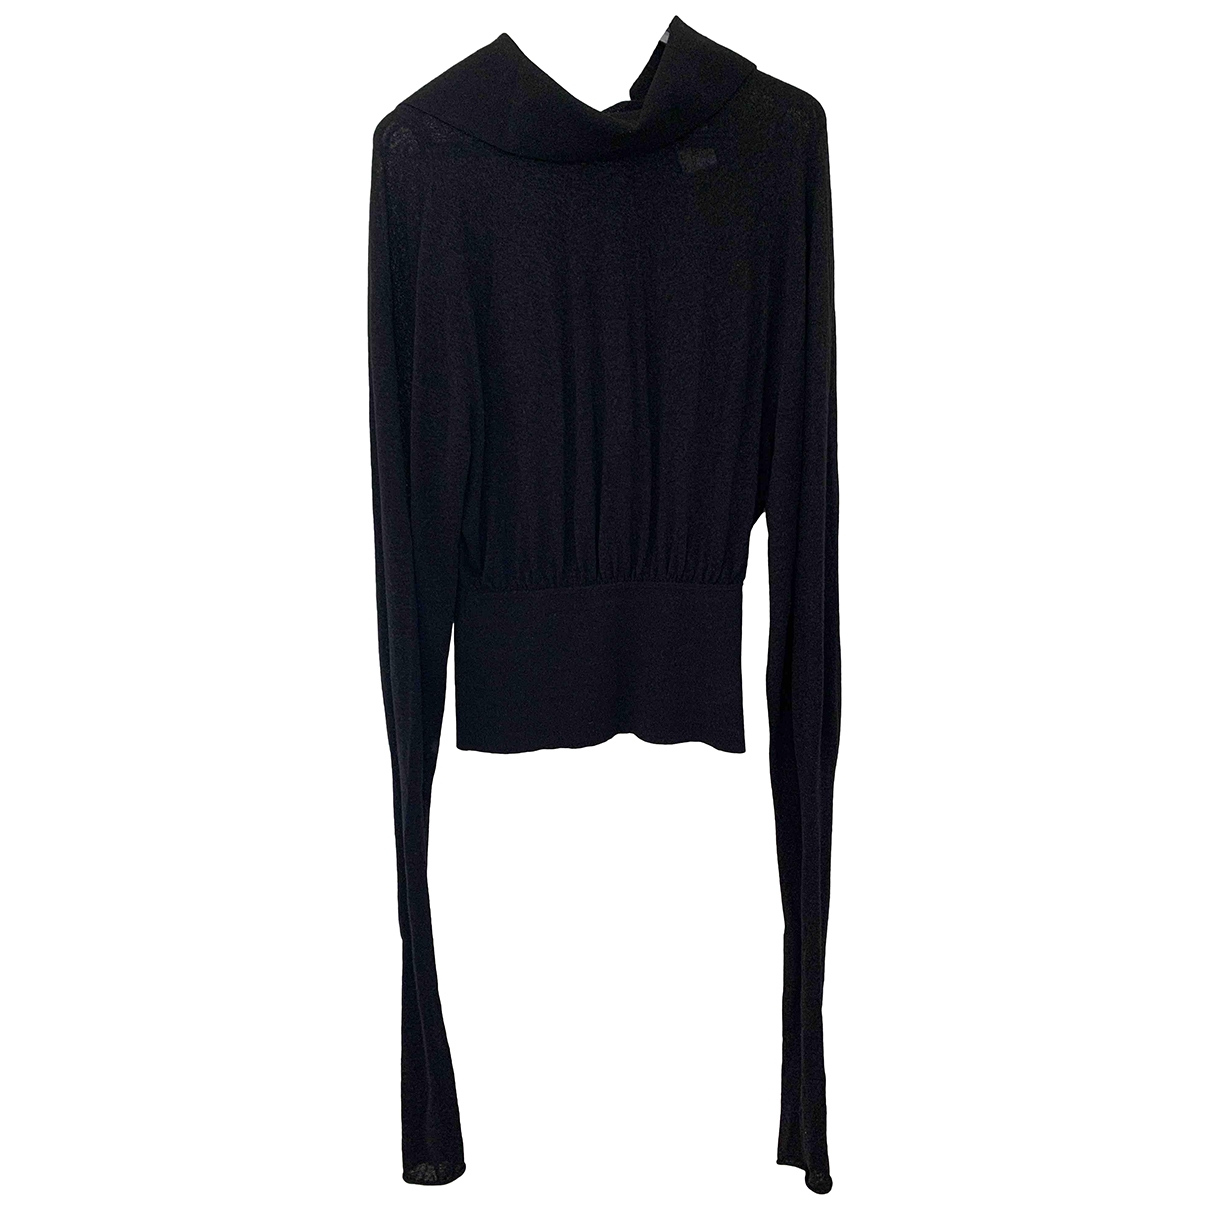 Lemaire \N Black Cotton  top for Women S International